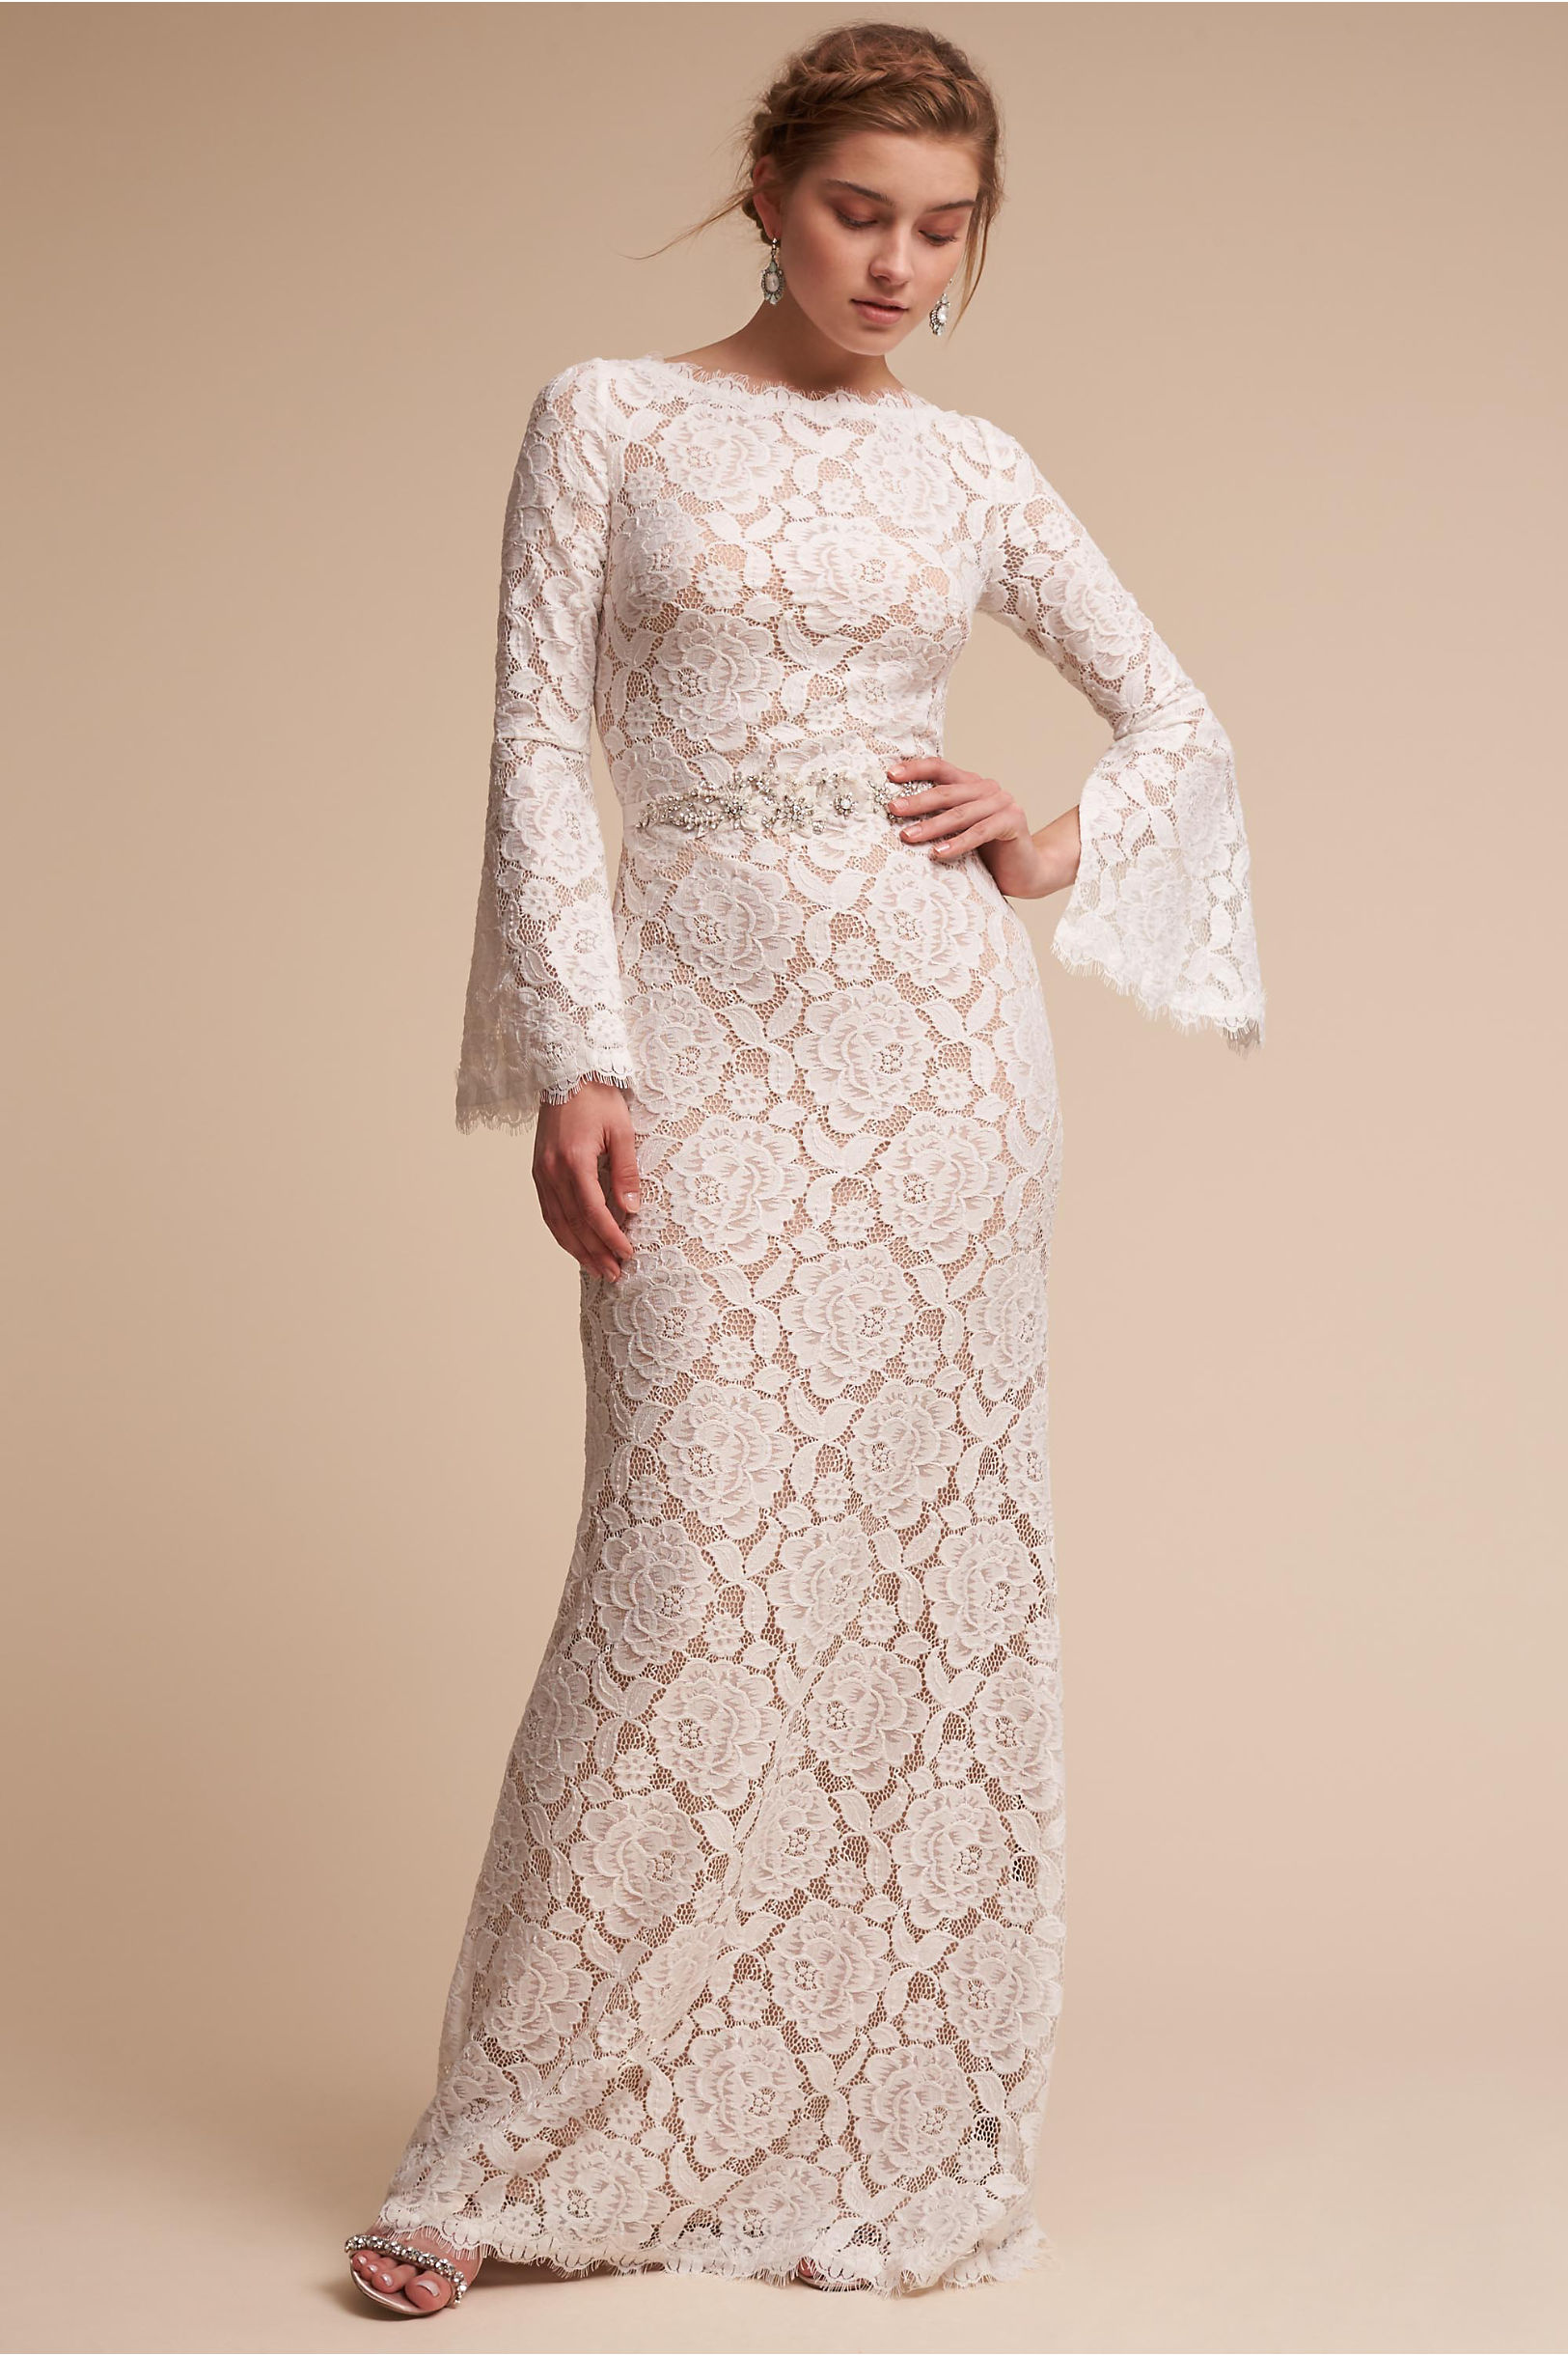 Foster Dress Ivory/Champagne in Sale | BHLDN